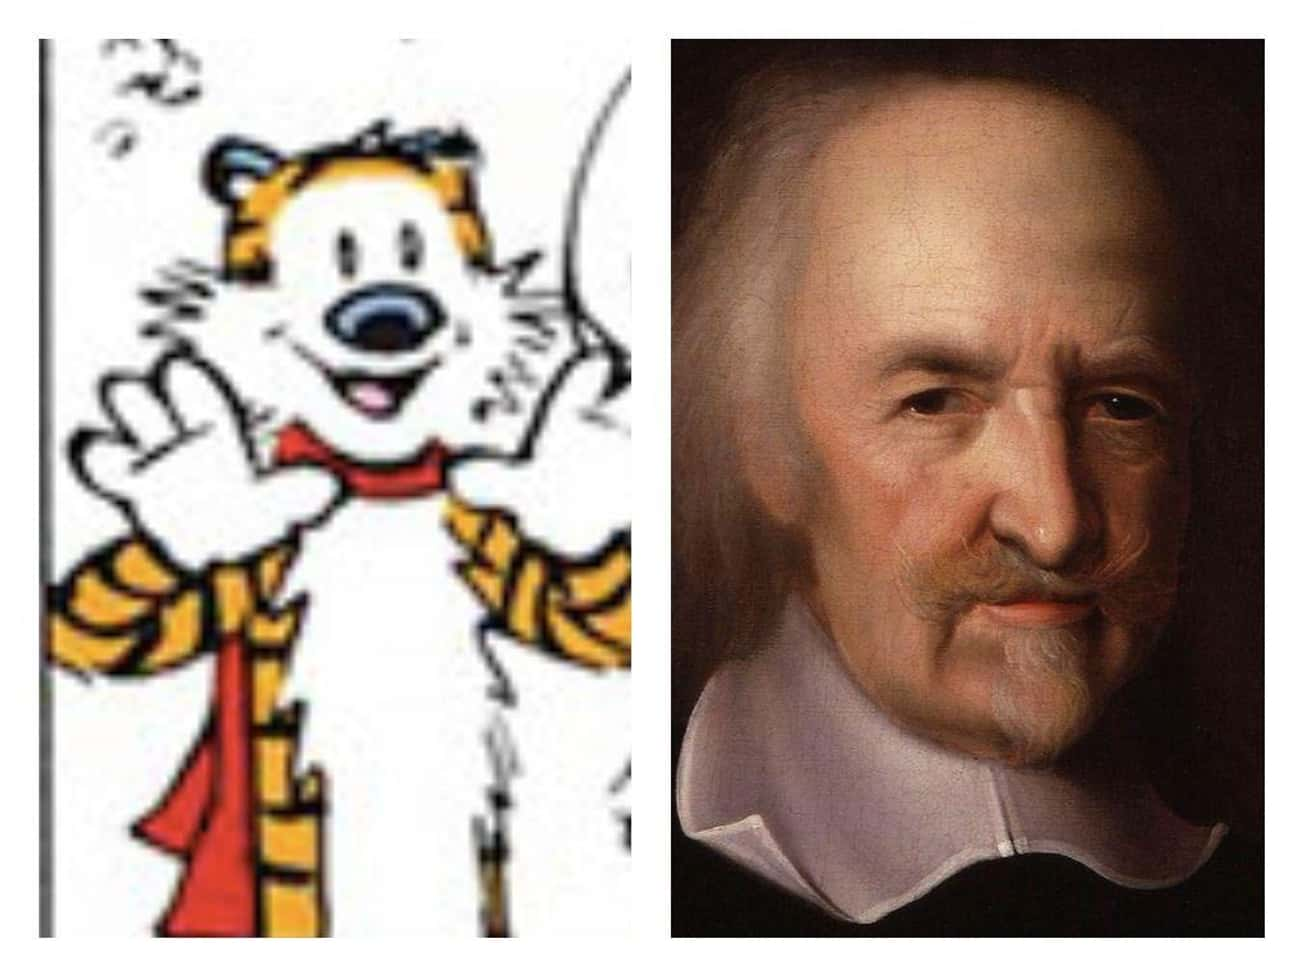 Hobbes Is Named For An English is listed (or ranked) 4 on the list The Surprisingly Dark Political Philosophy of Calvin And Hobbes That You Definitely Missed As A Kid